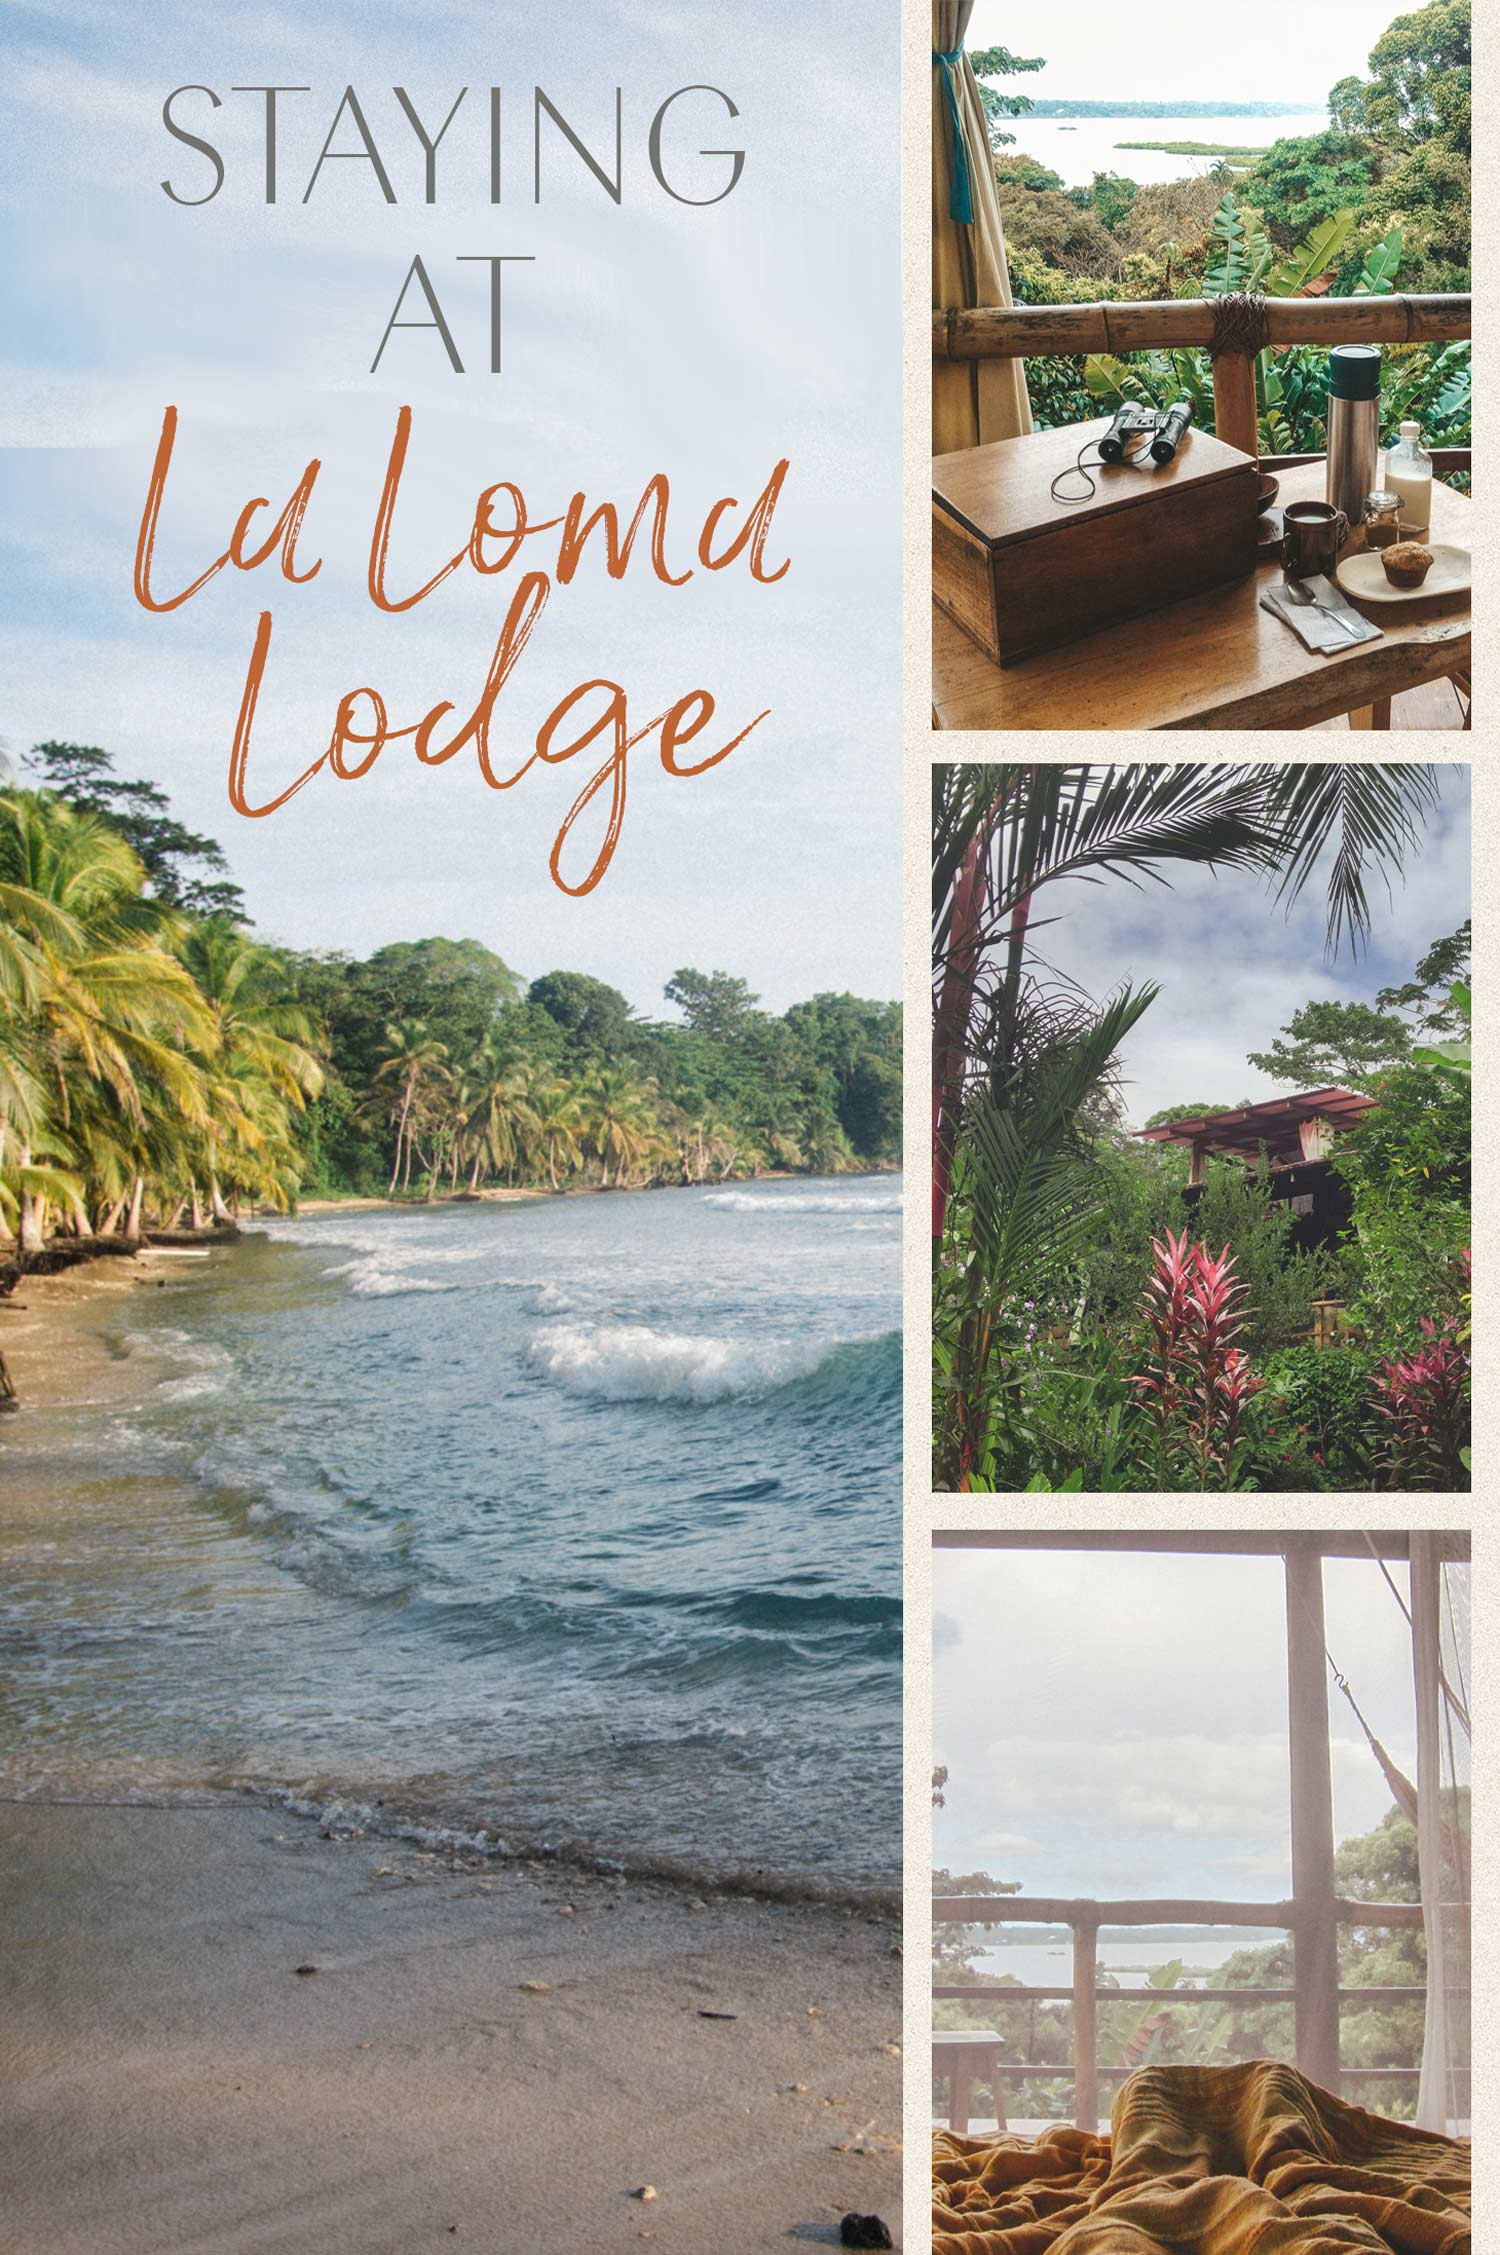 Accommodation in La Loma Lodge